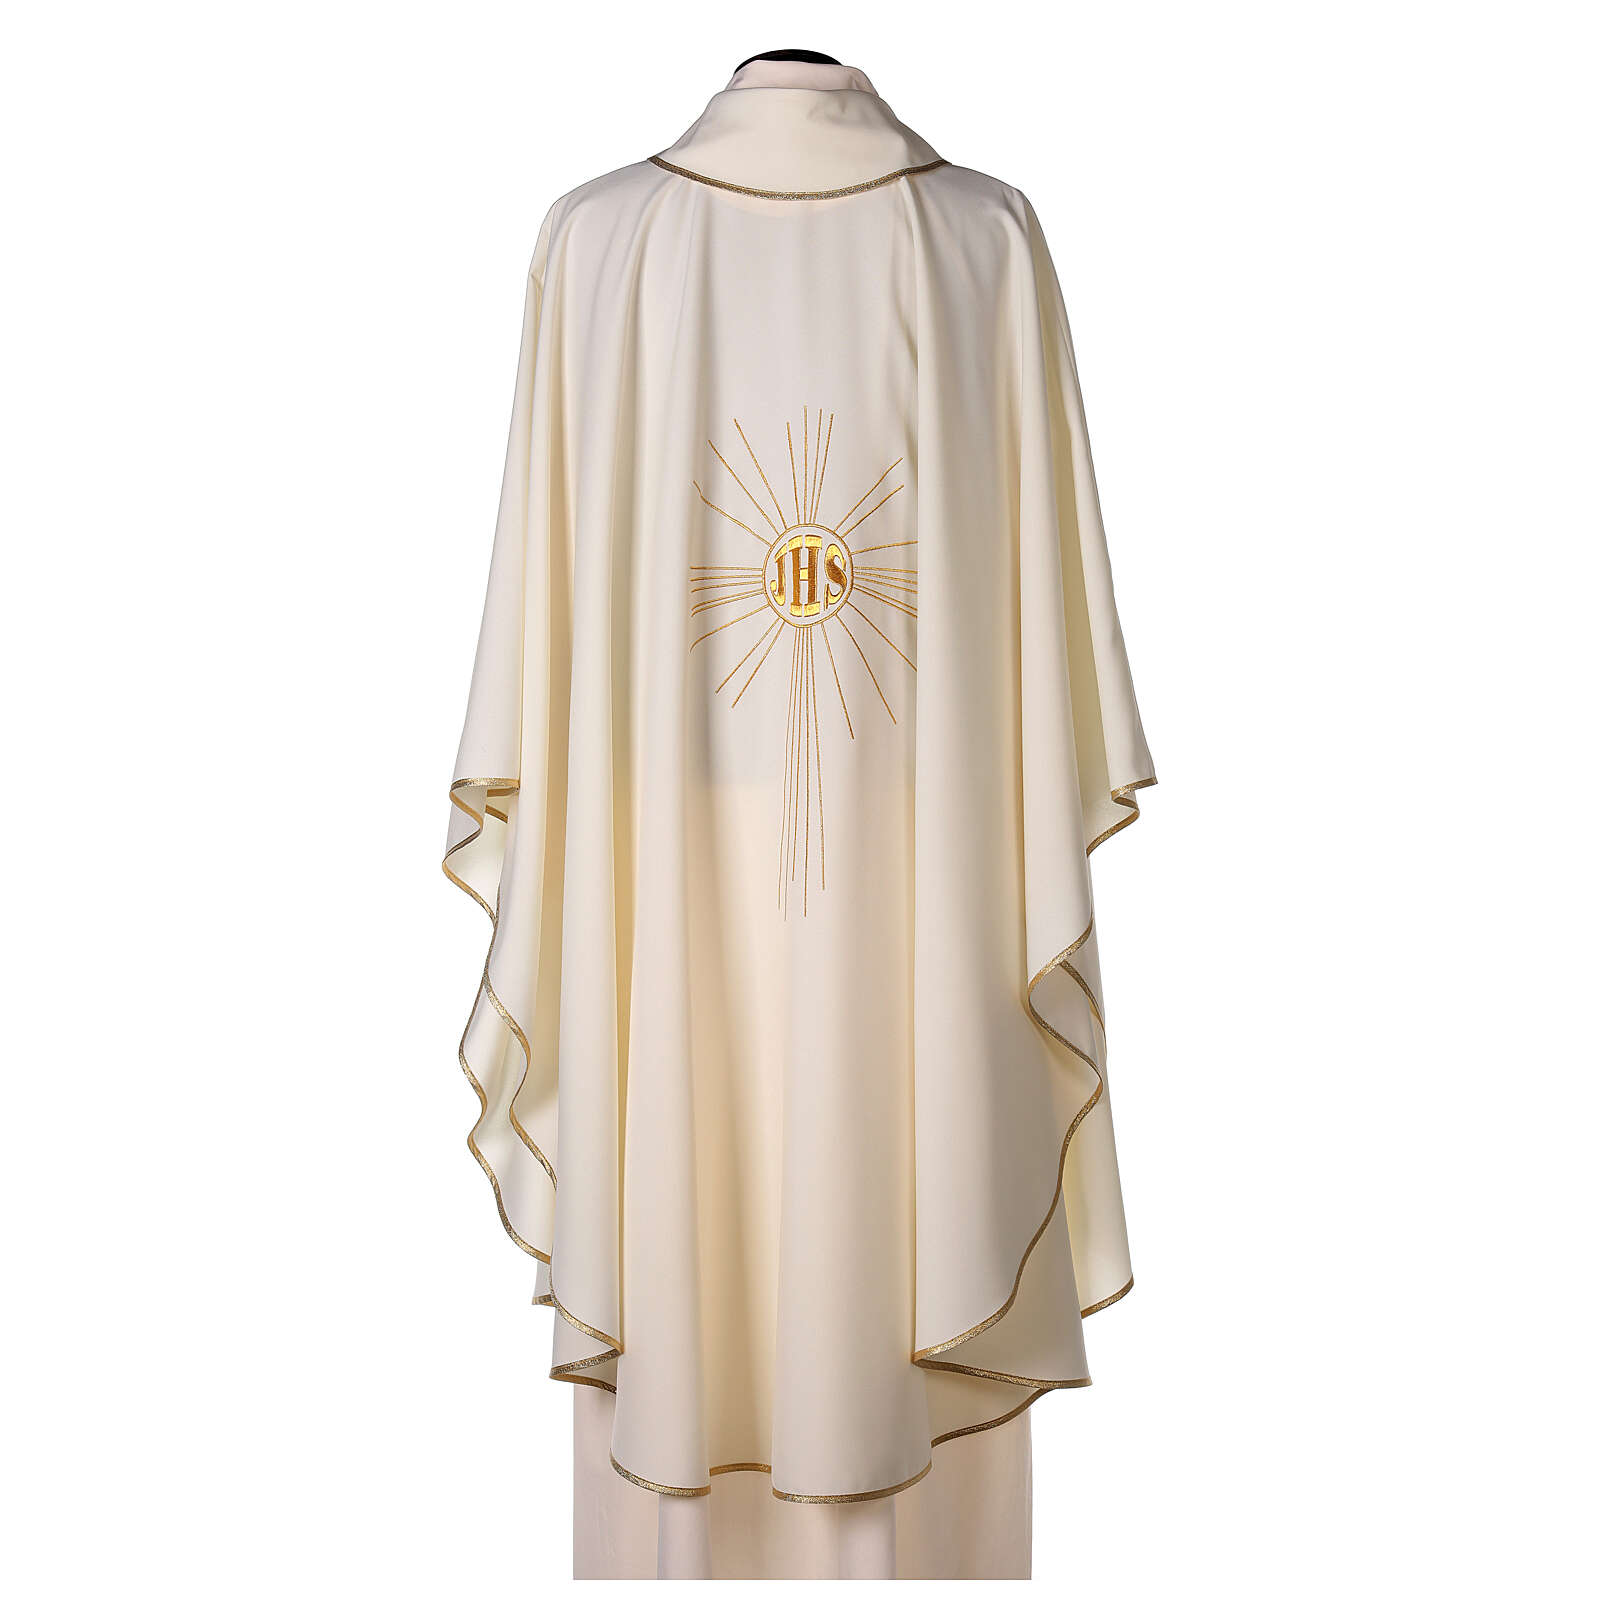 JHS Chasuble with rays in polyester crepe 4